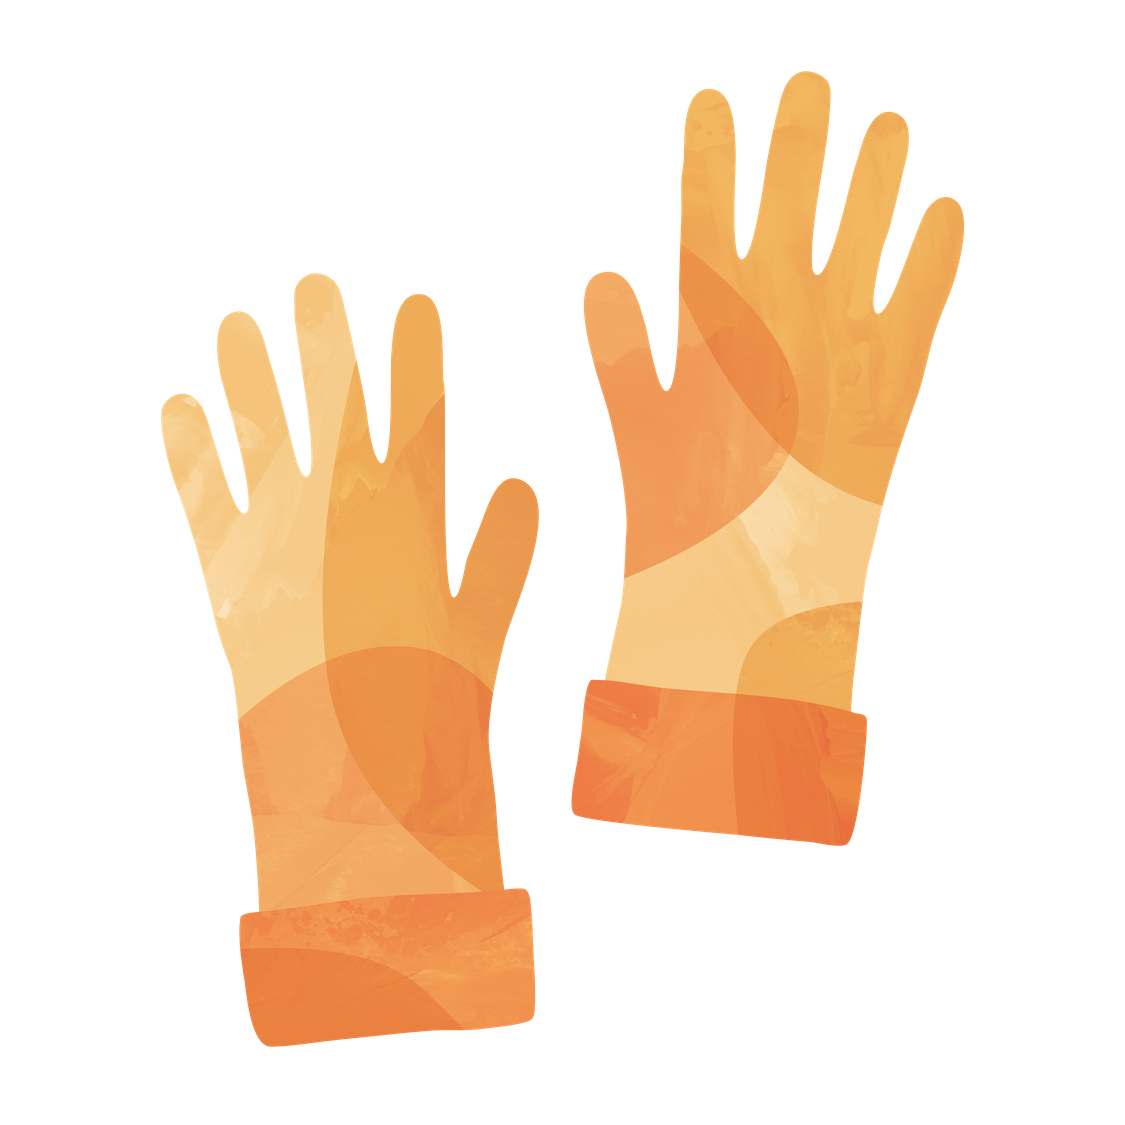 orange cleaning gloves illustration